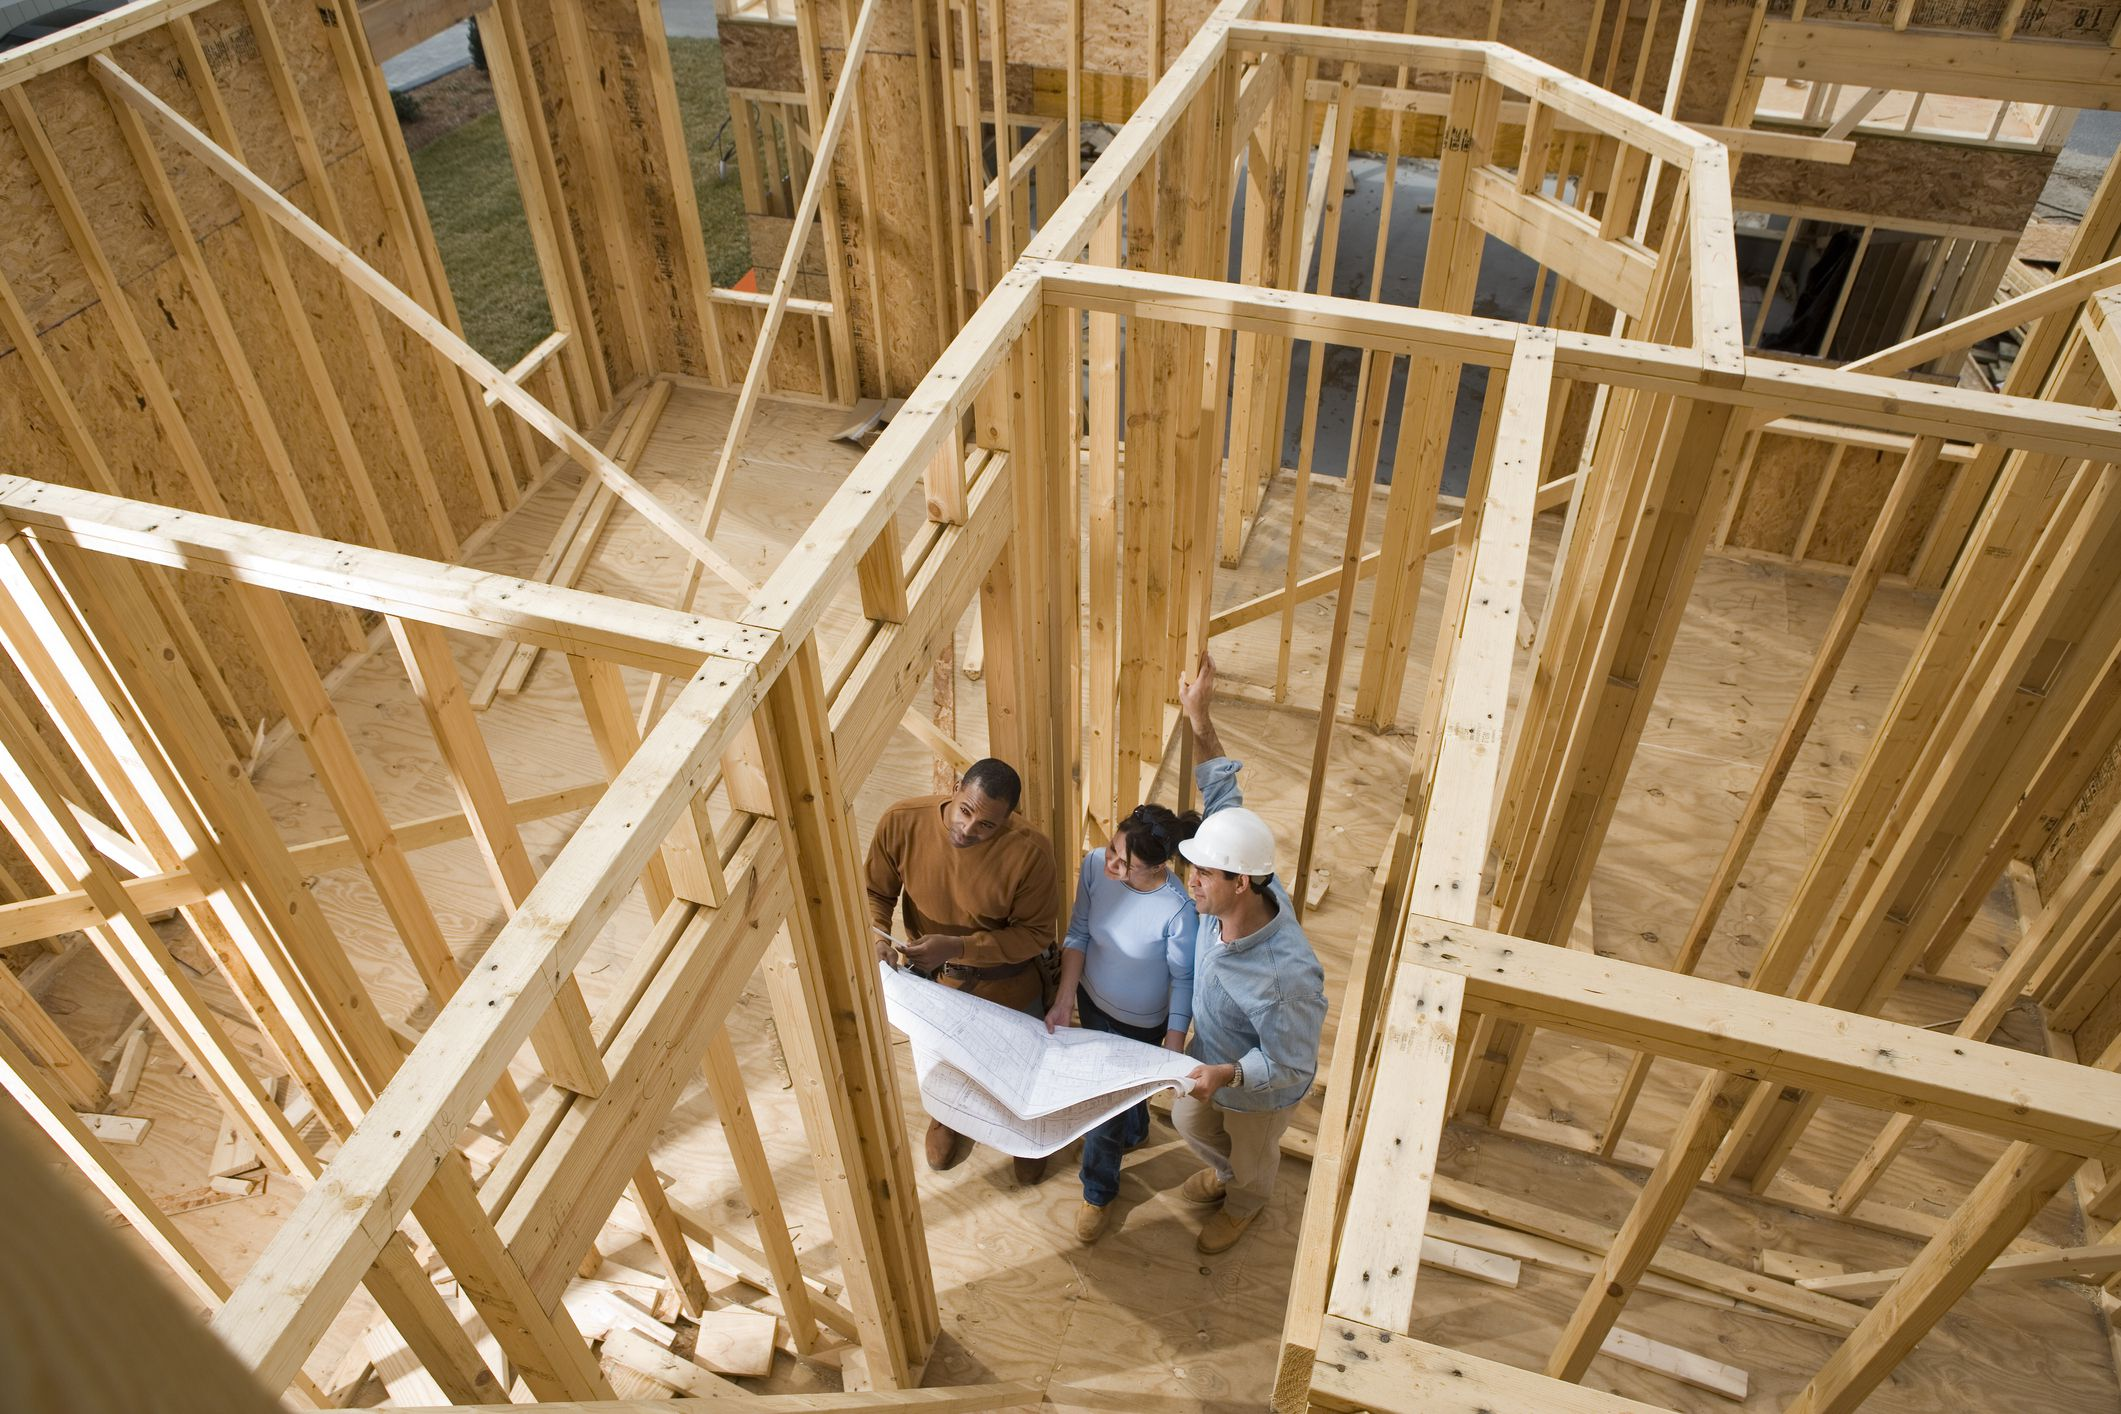 Build on a Budget: Cut Costs When You Build or Remodel